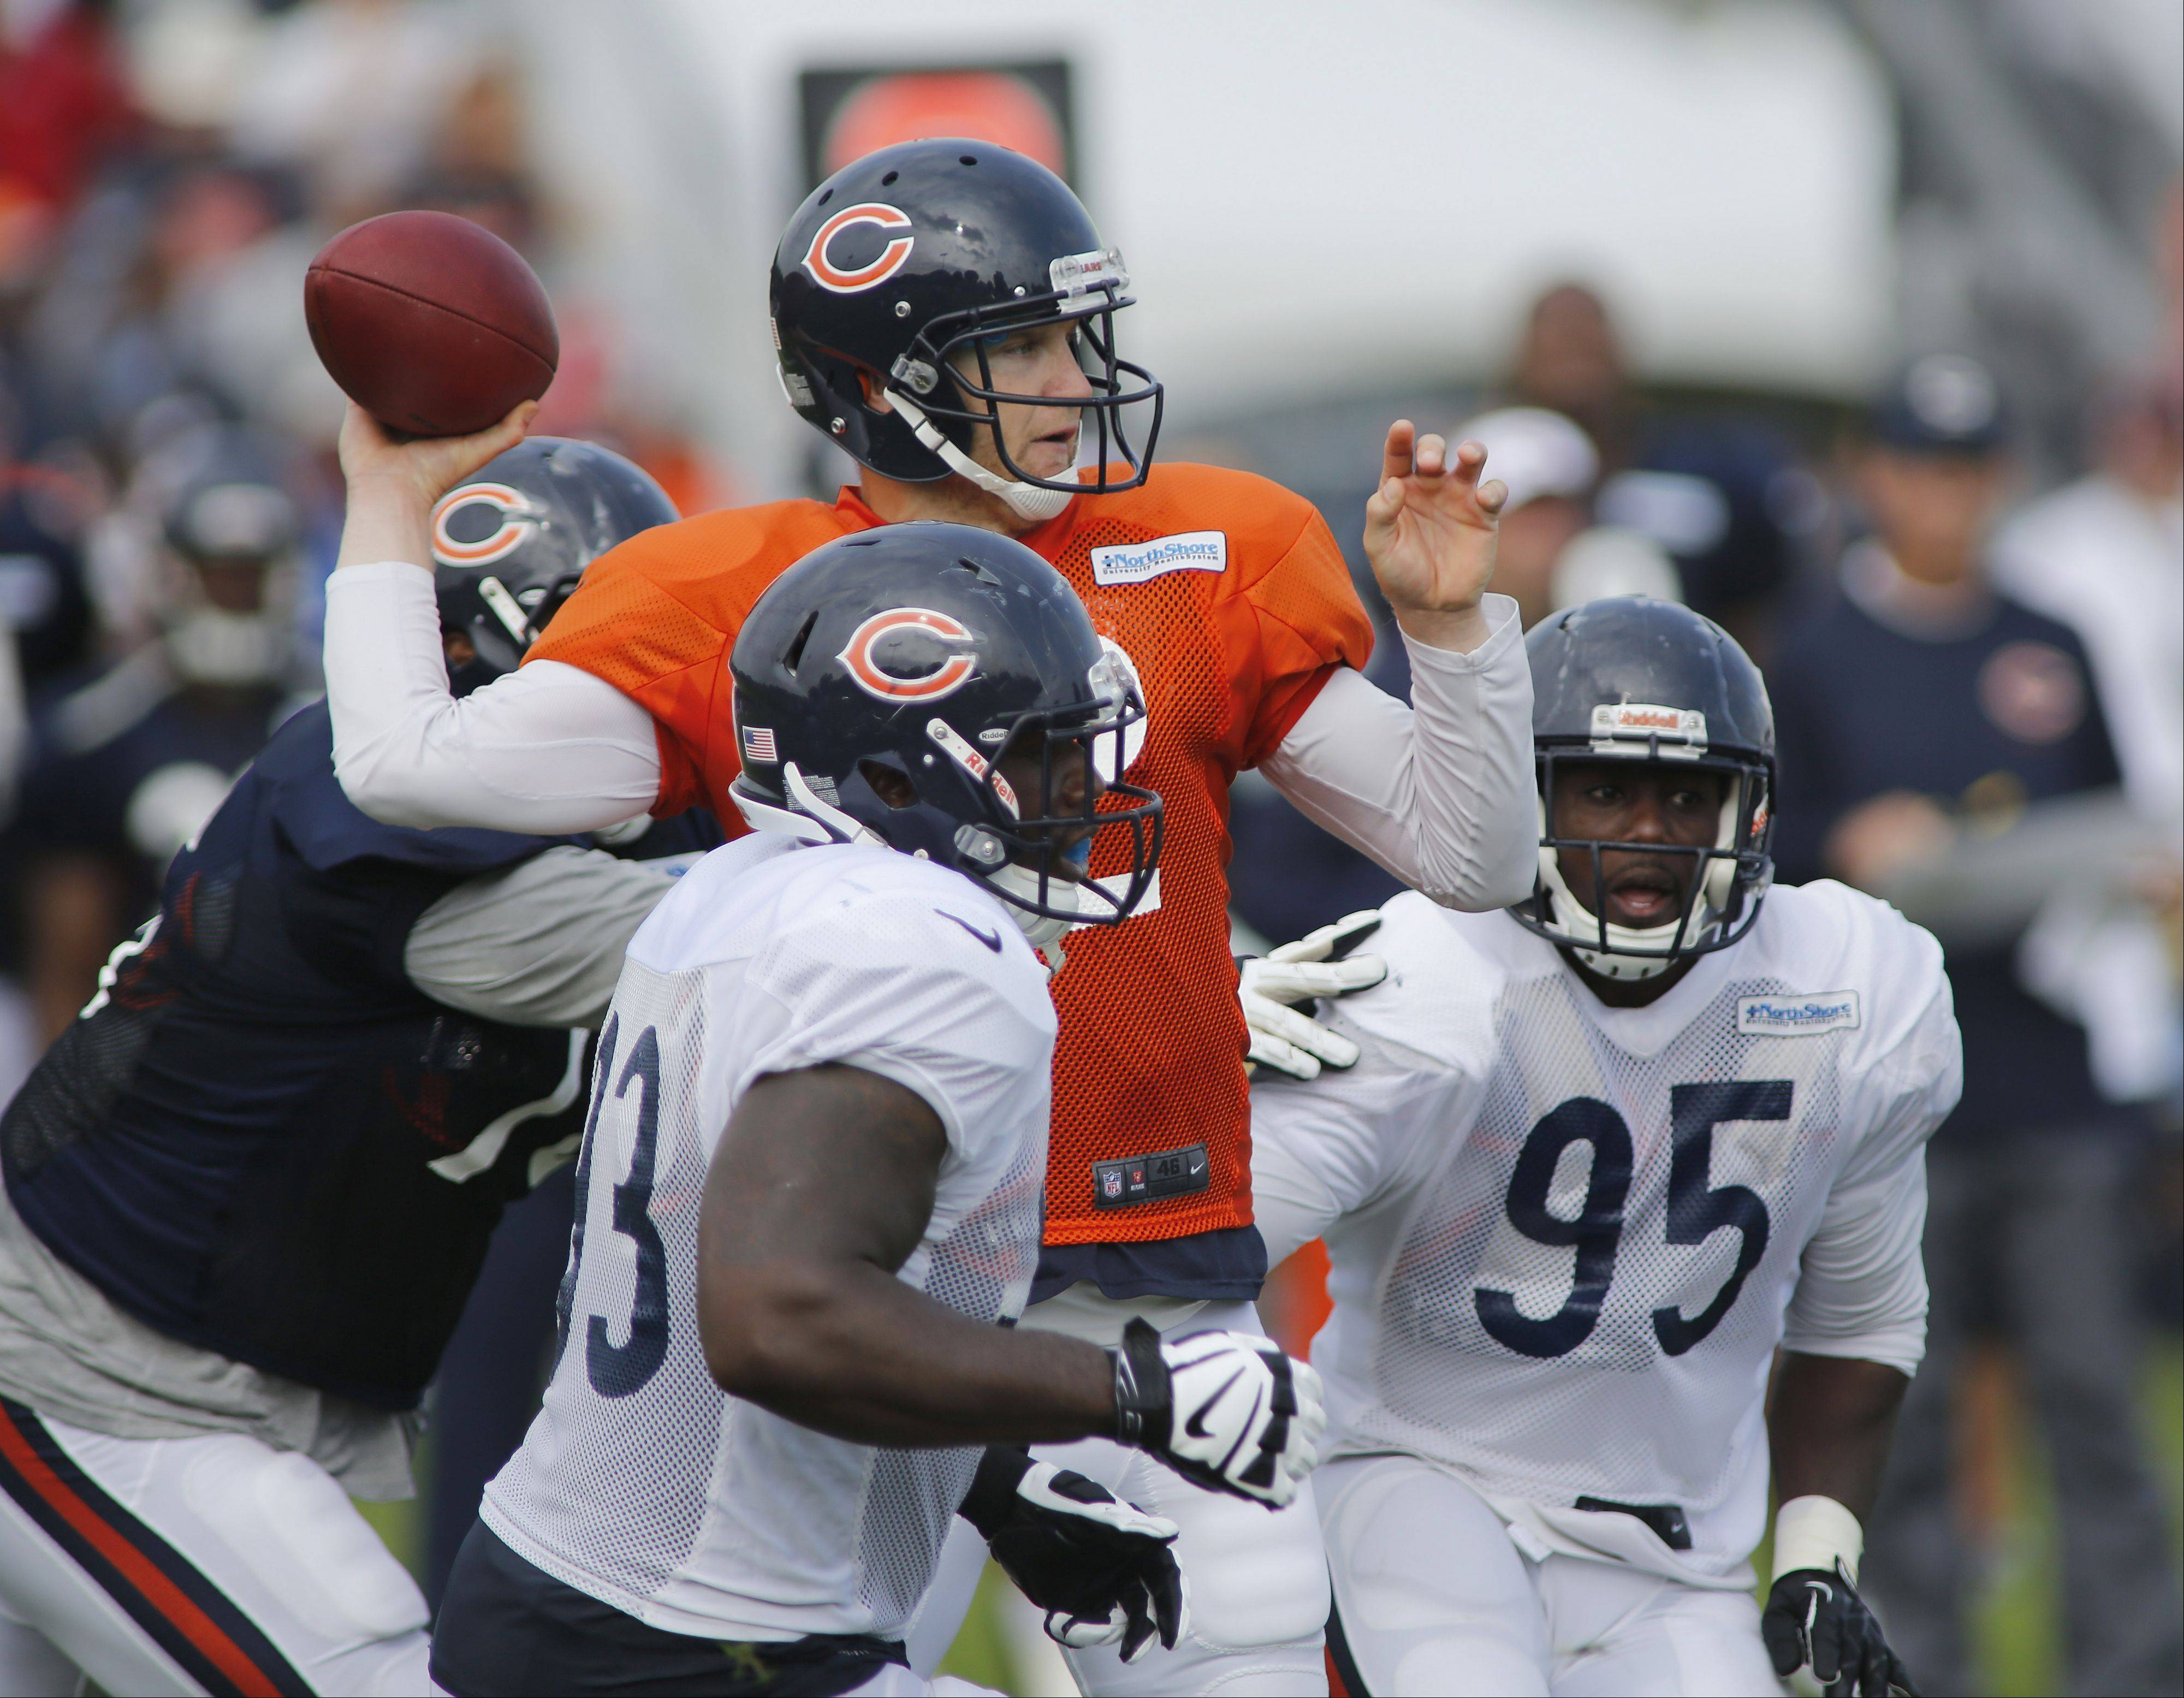 Images: Bears Camp on Wednesday